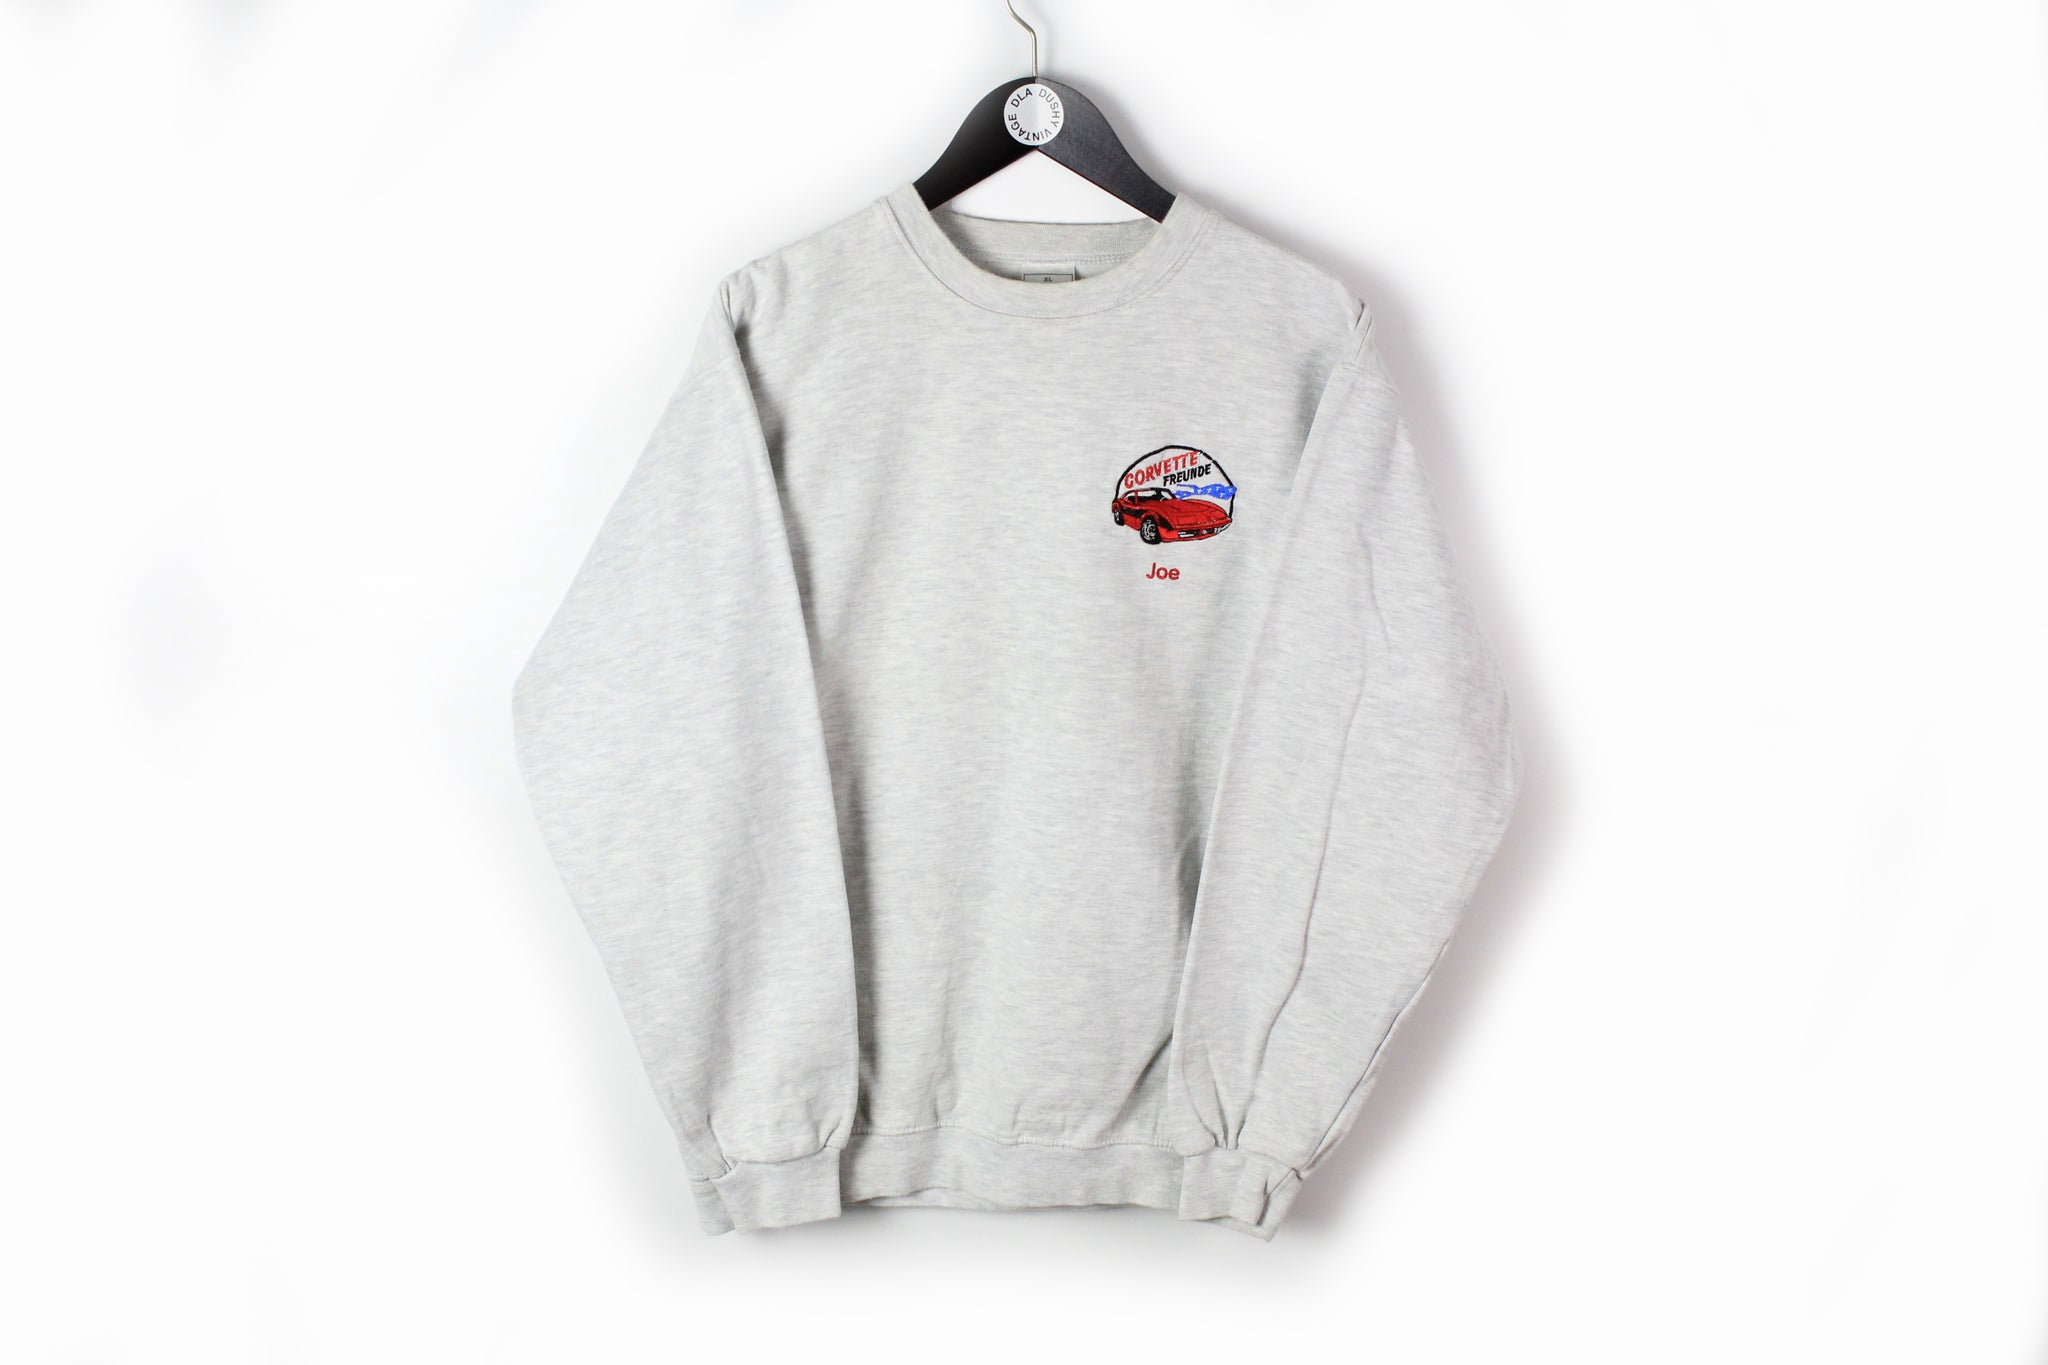 Vintage Corvette Freunde Sweatshirt Medium 90s Hanes gray embroidery logo Joe retro style jumper